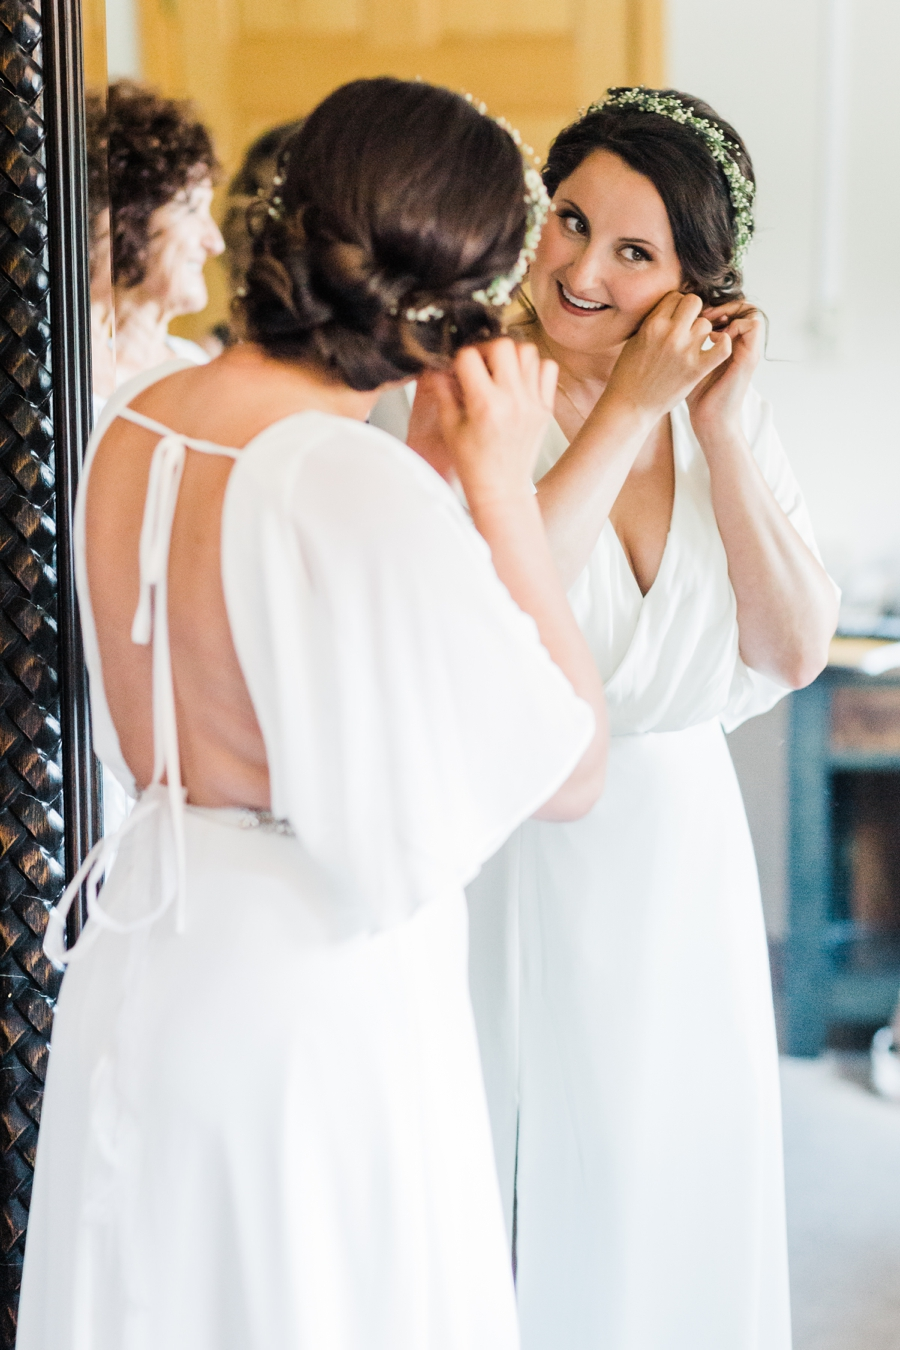 Bride getting ready for her wedding at Grand Targhee Resort in Wyoming